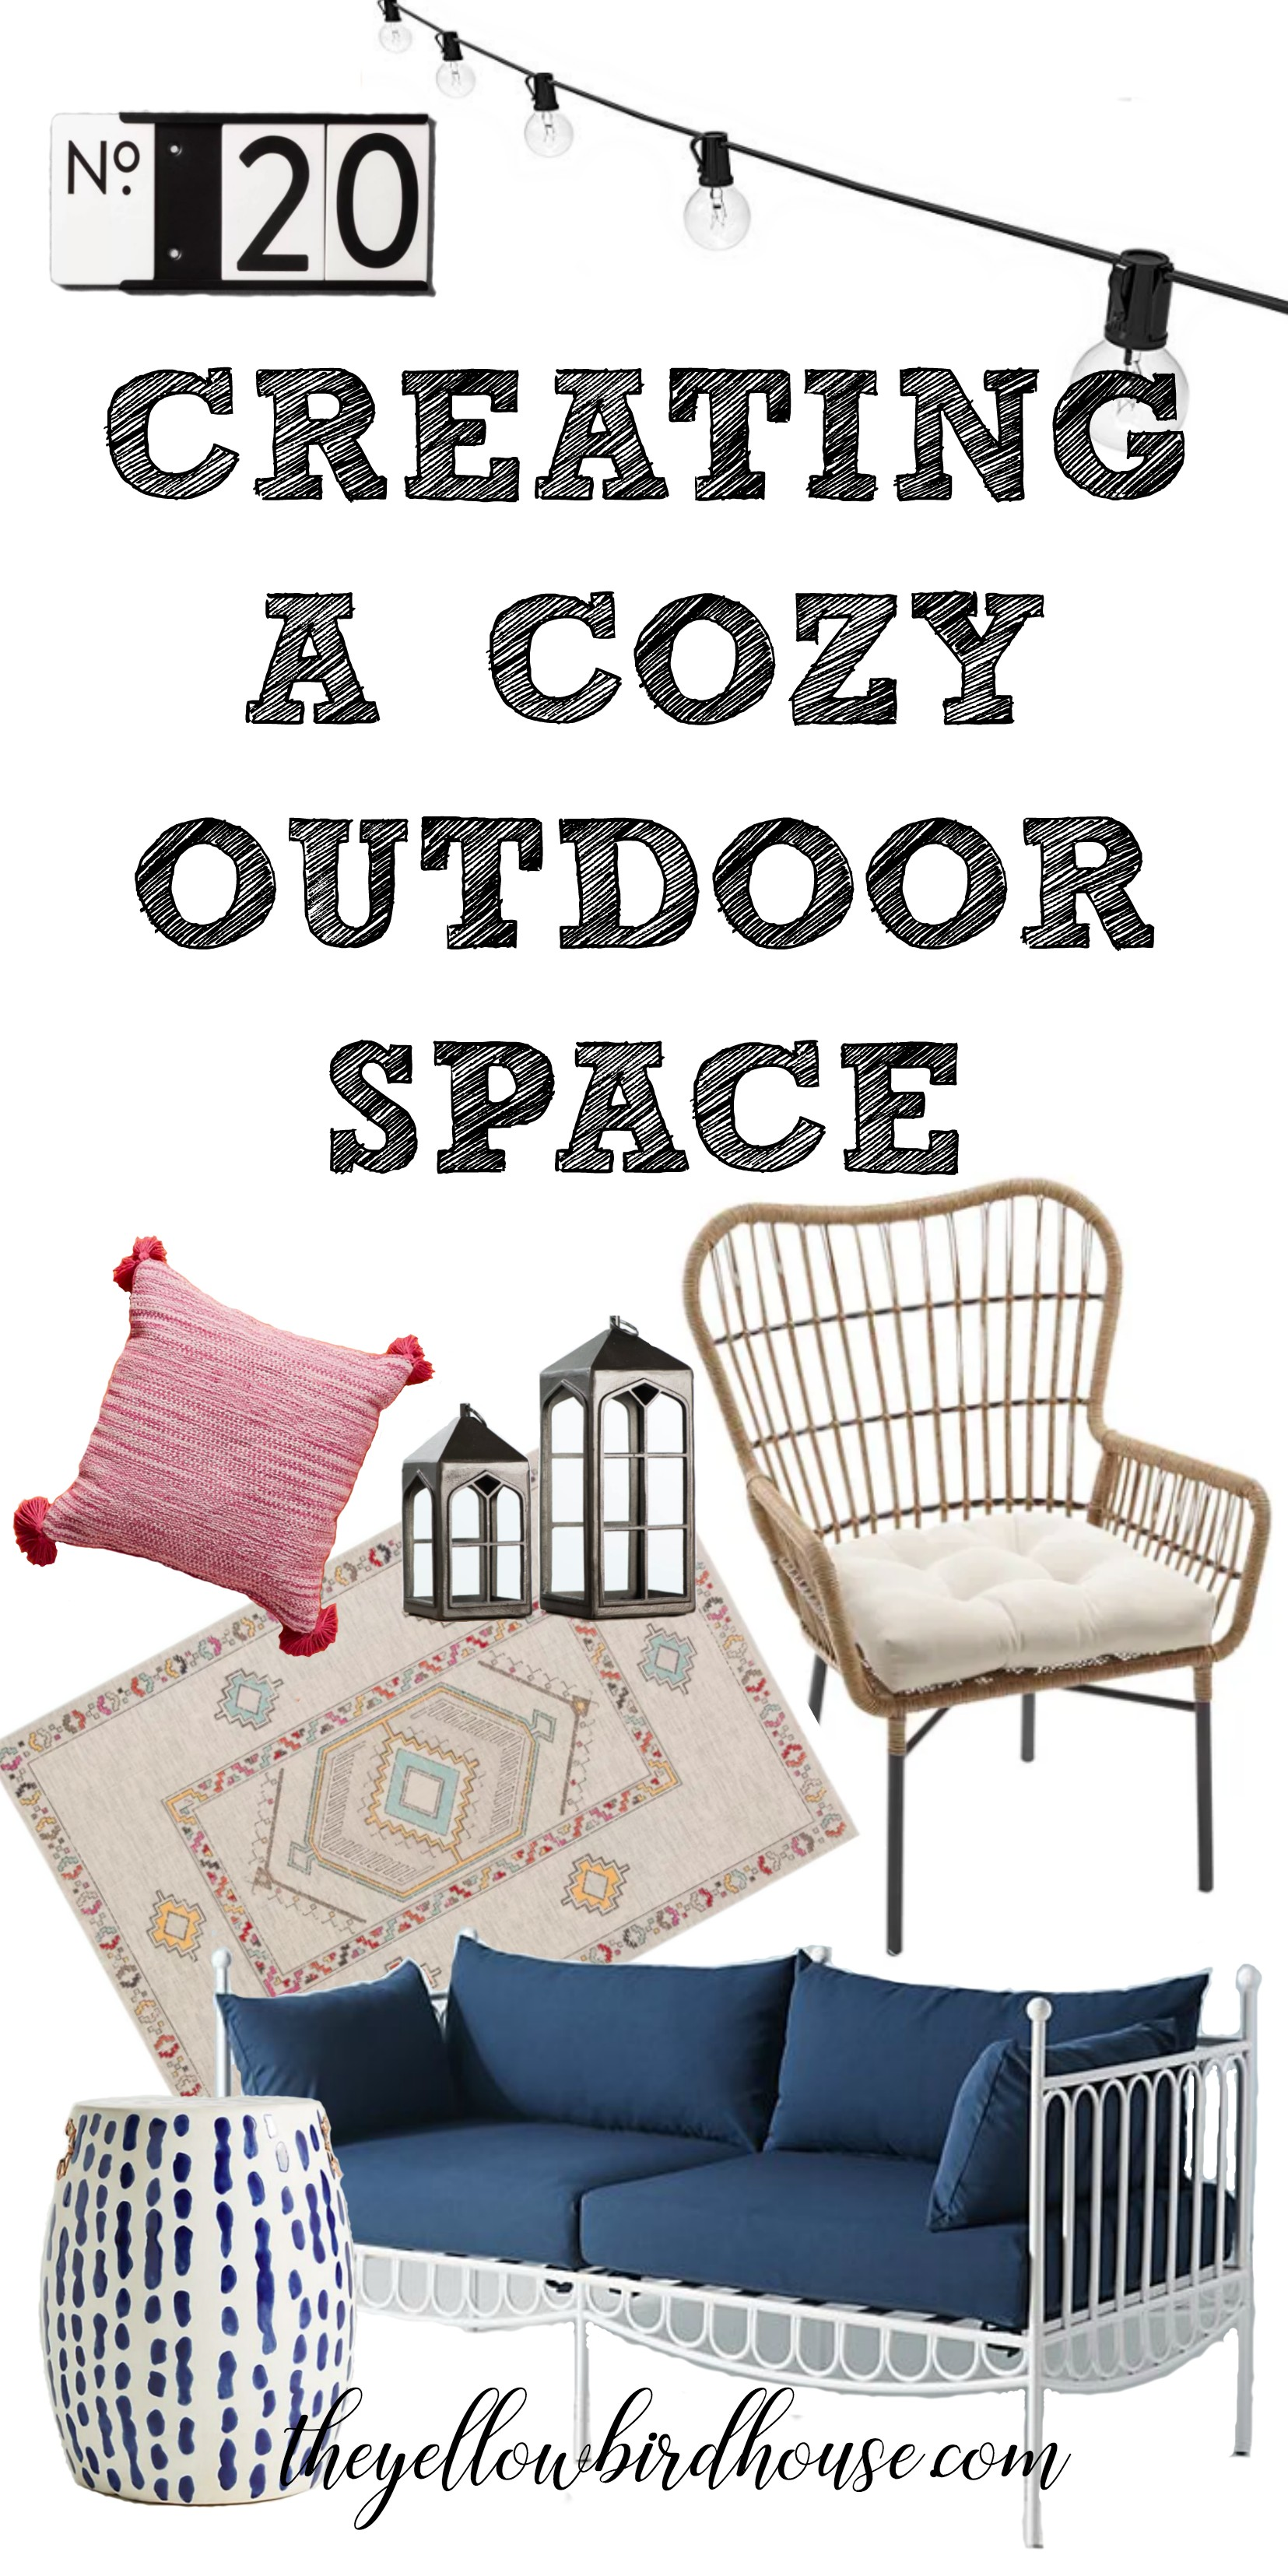 Creating a cozy outdoor space. My design ideas for a boho outdoor space. I'm making a design plan for our new covered deck for the house we're building. Boho deck decor. Cozy design elements for outdoor spaces. I've having fun making design plans for the new house, including this super cozy and unique covered deck!